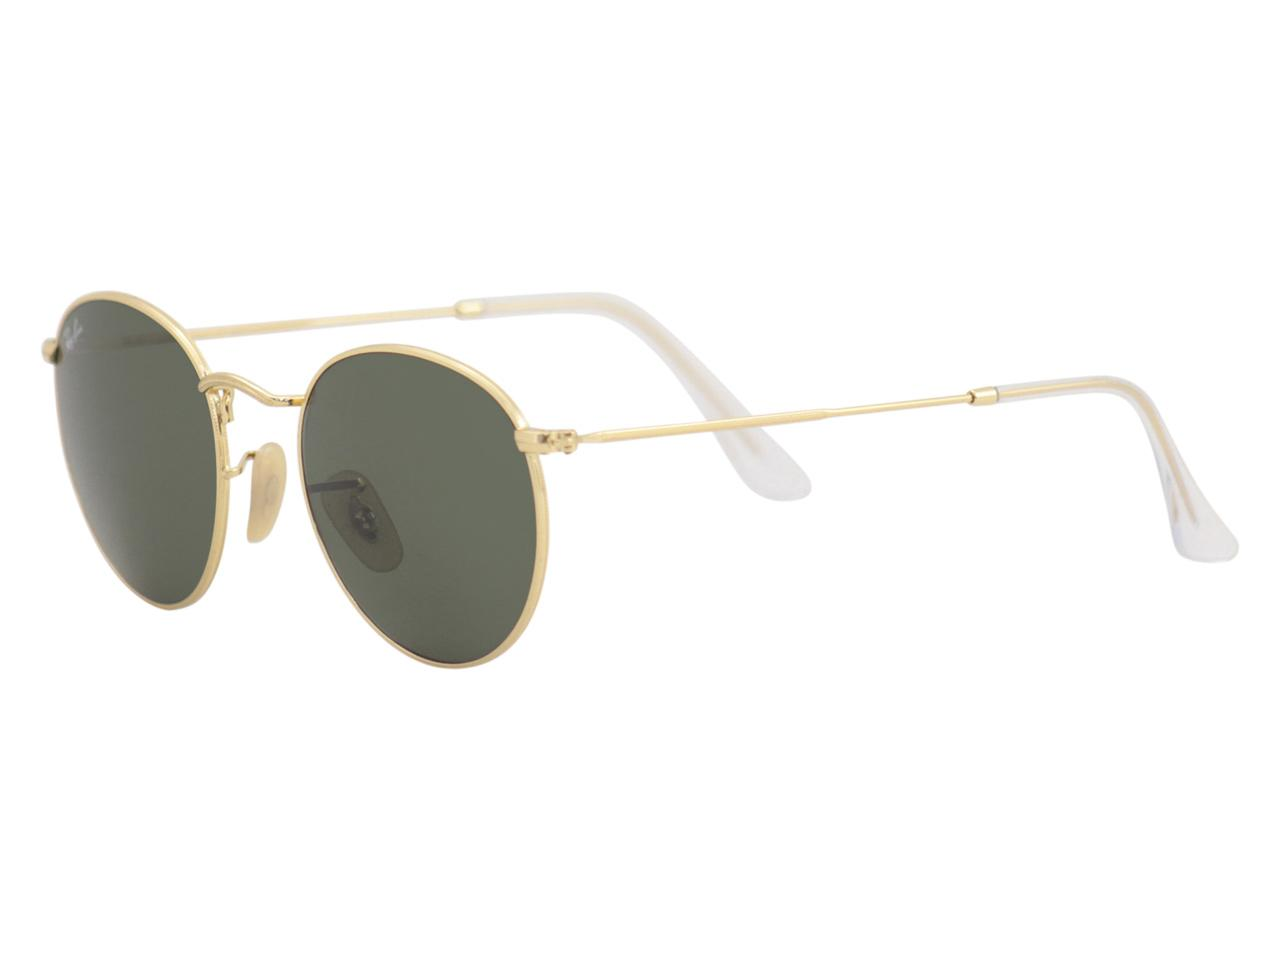 e4c698b86e1 ... RB 3447 RayBan Sunglasses by Ray Ban. Touch to zoom